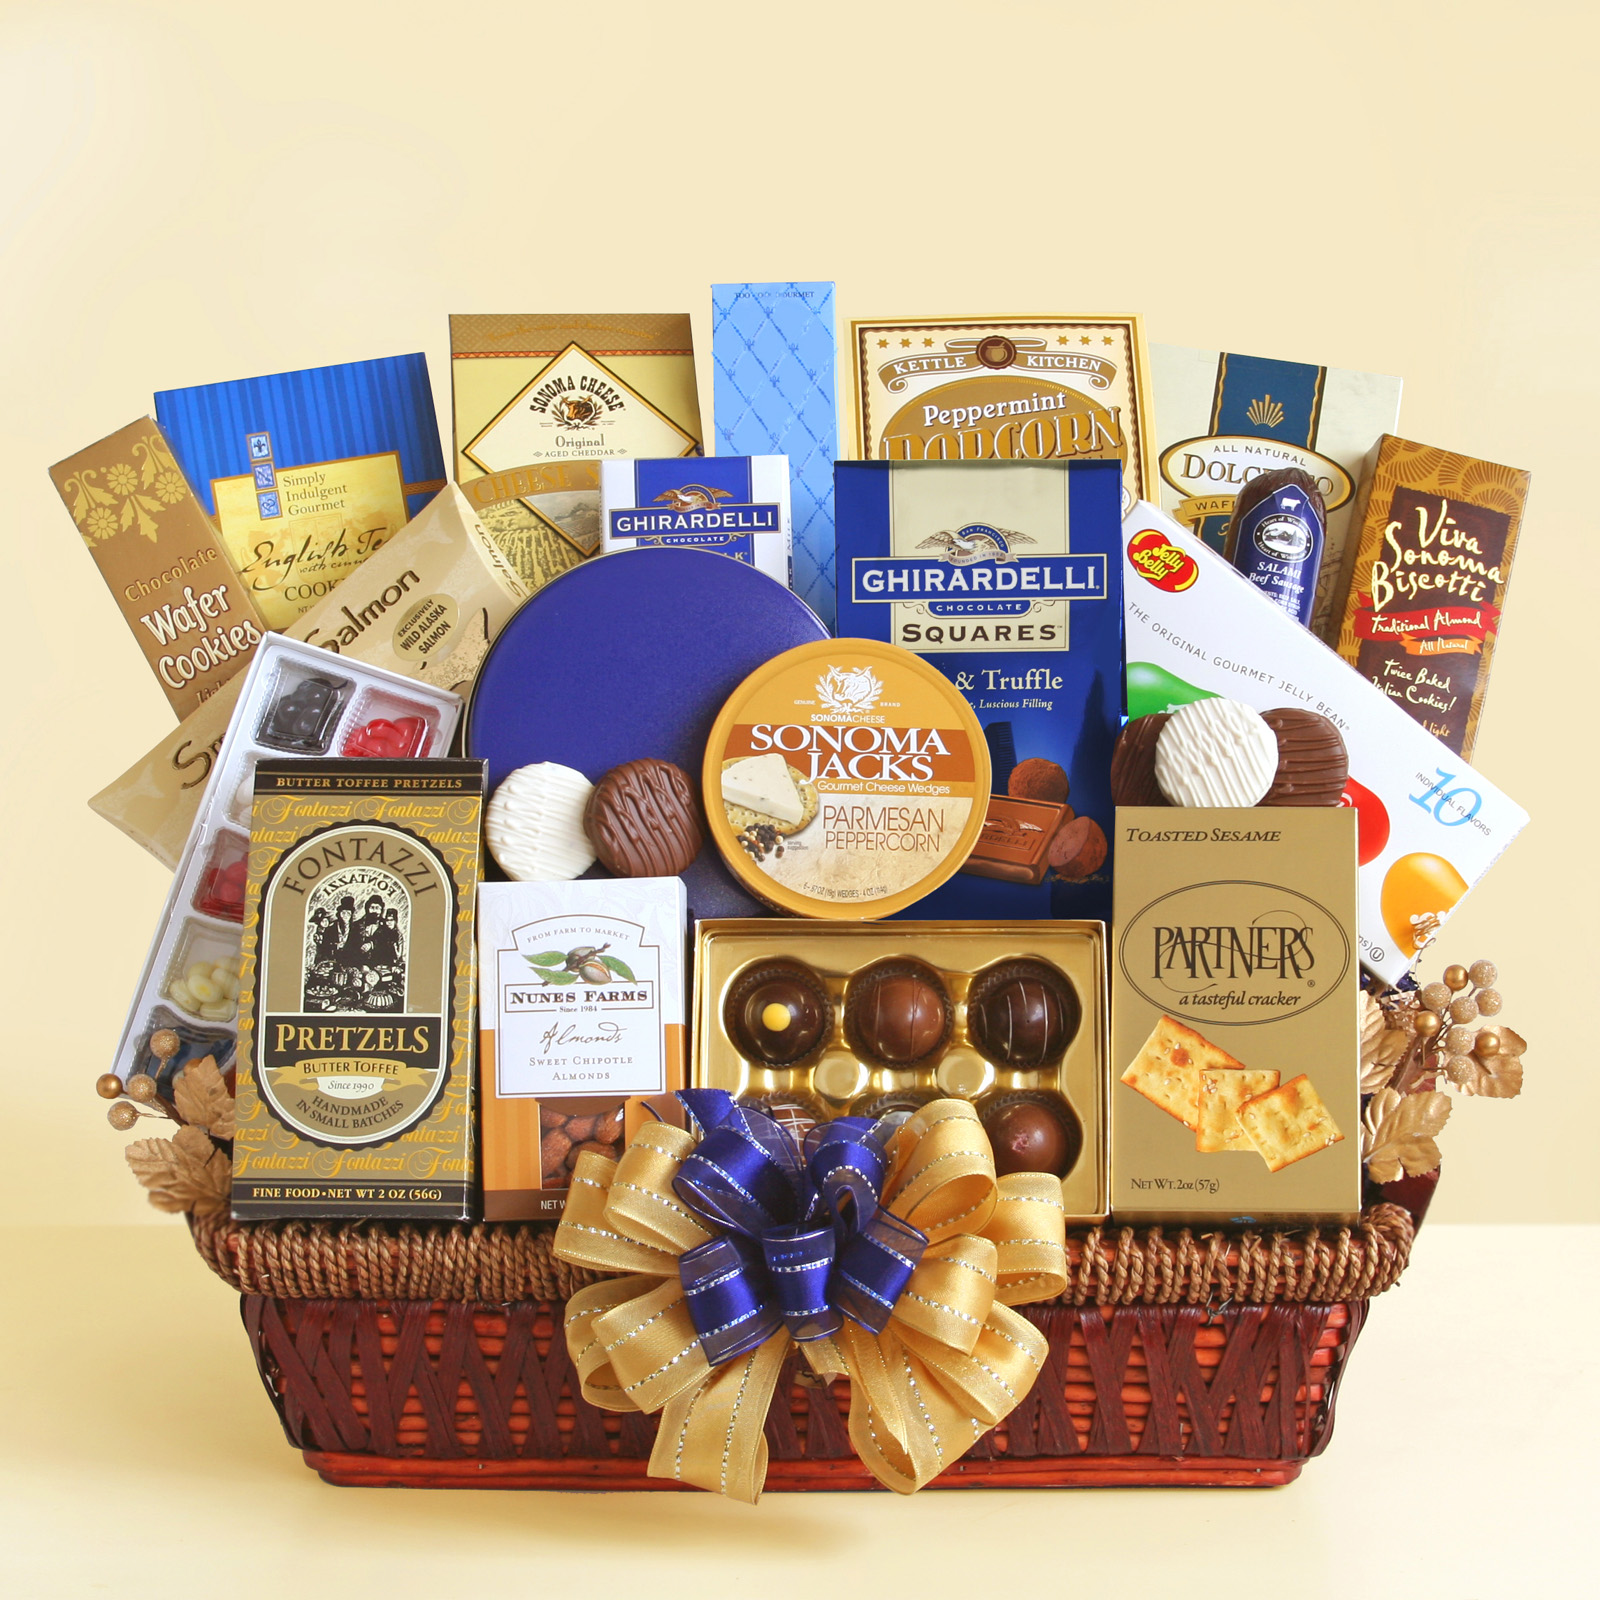 Executive Decision Gift Basket | Hayneedle